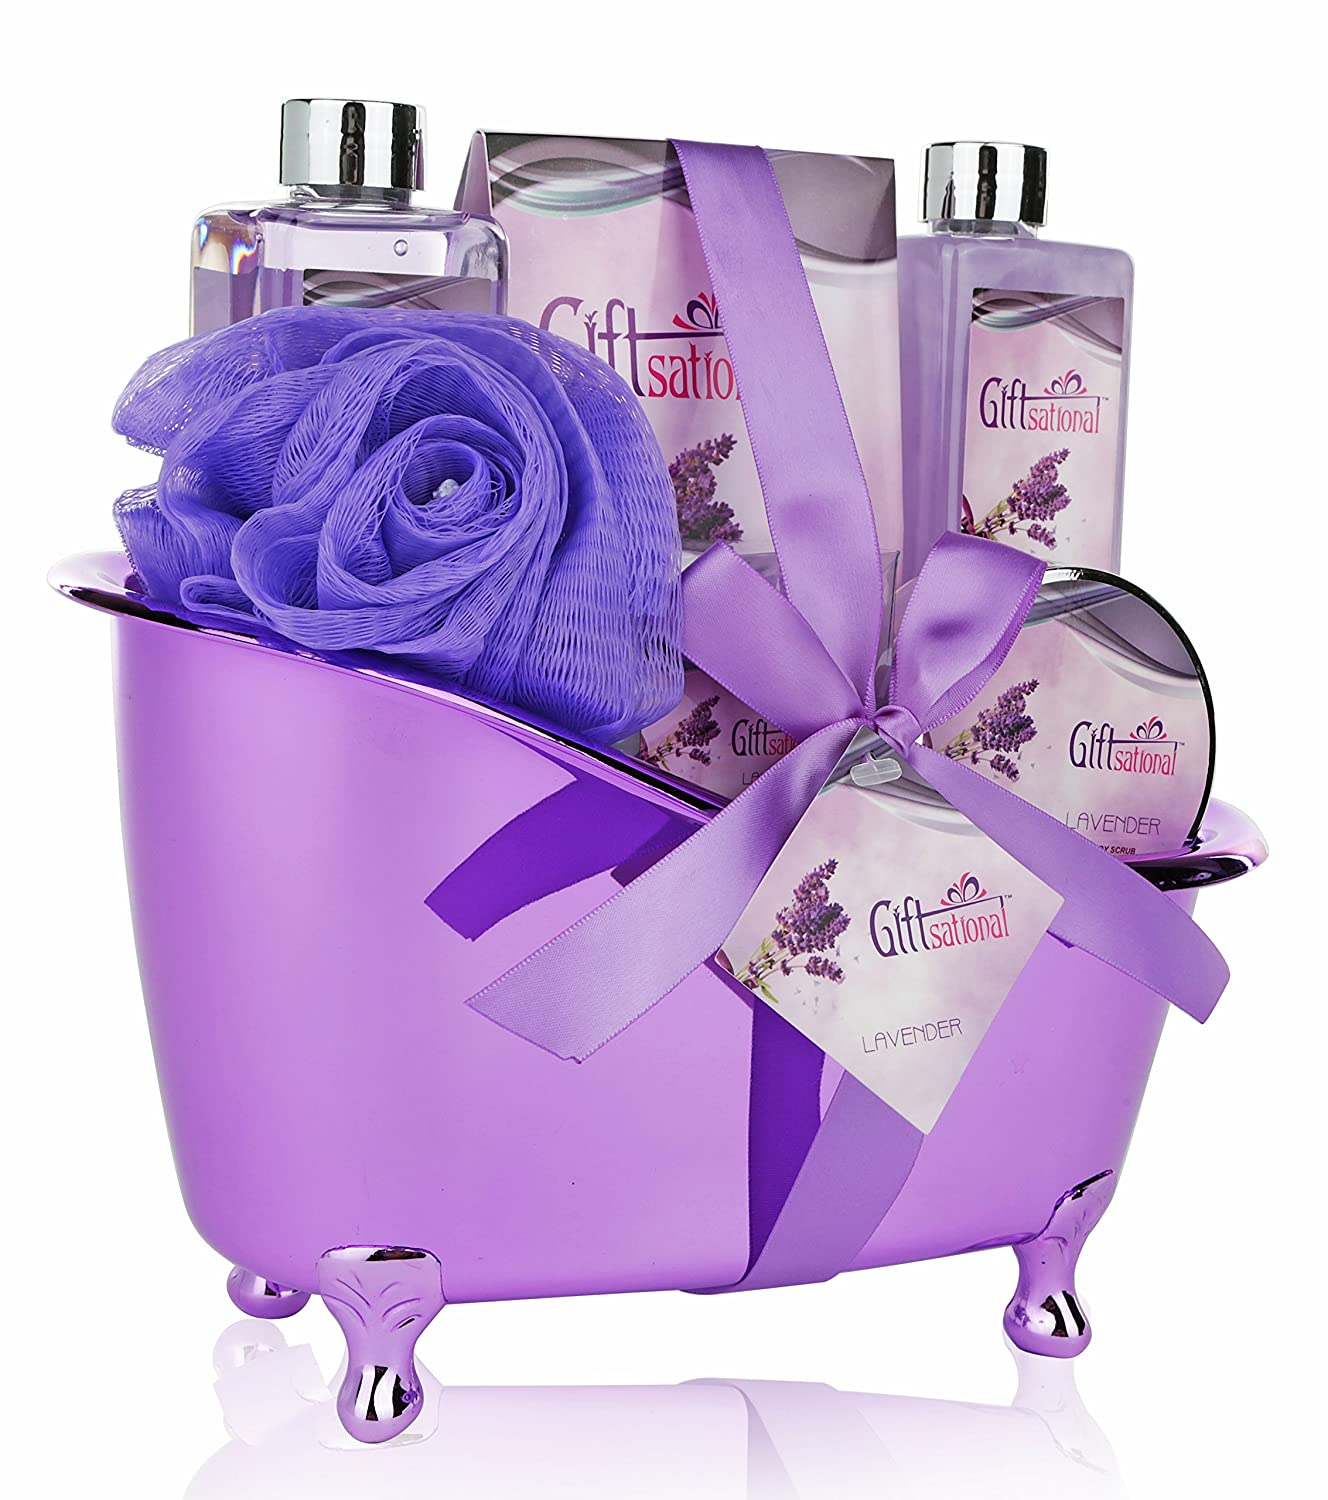 Spa Gift Basket Lavender Fragrance, Cute Tub-Shaped Holder With Bath Accessories - Great Wedding, Birthday or Anniversary Gift Set - Includes Shower Gel, Bubble Bath, Bath Salts, Bath Bombs & more! Giftsational